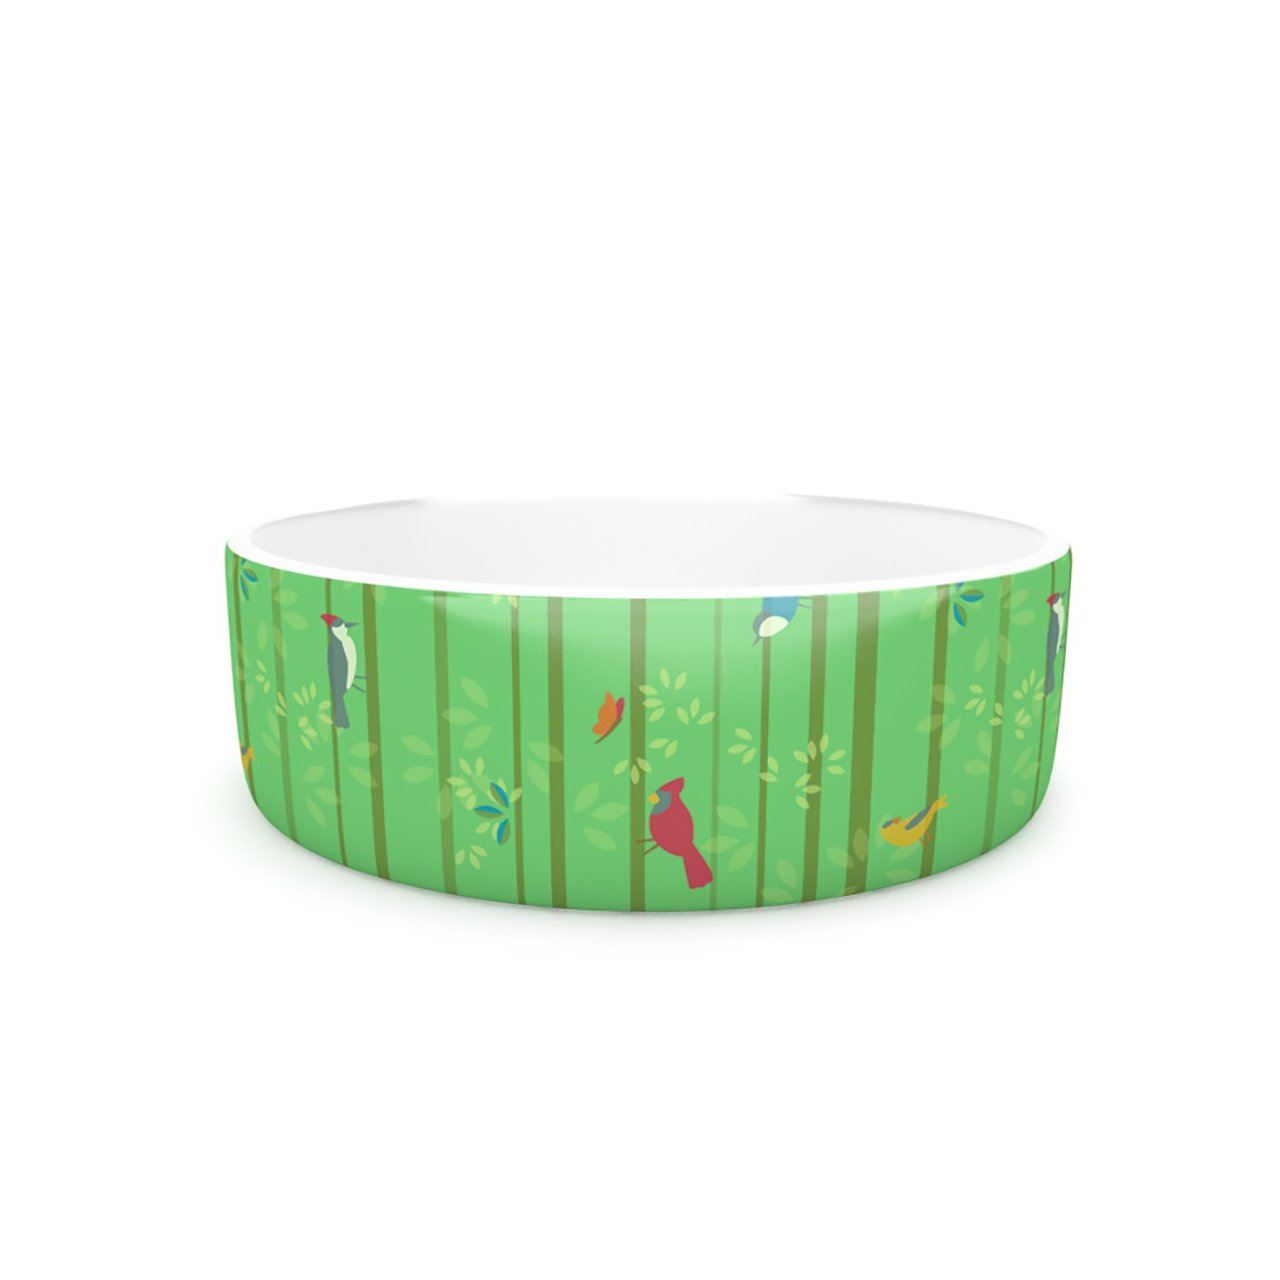 Kess InHouse Allison Beilke Hello Birdies  Pet Bowl, 7-Inch